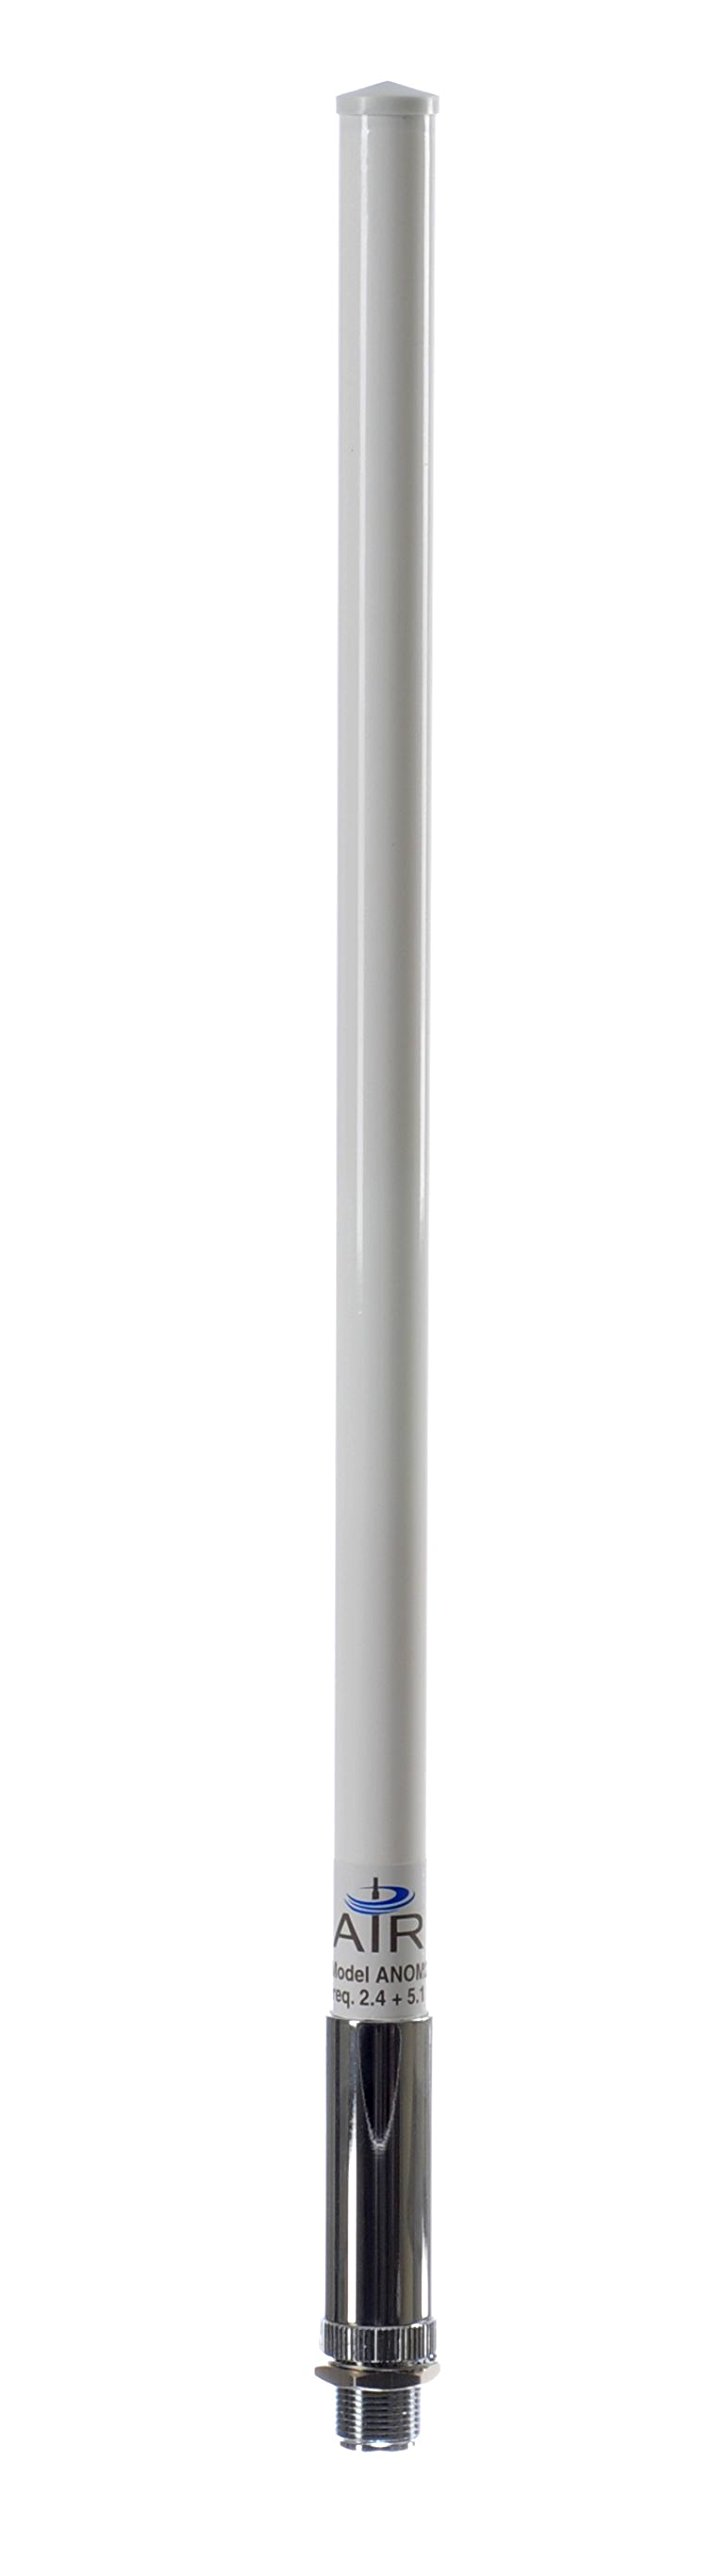 AIR802 Dual-Band Mesh Omni-Directional Antenna, 2.4 & 5 GHz Dual-Frequency, N Jack-Female Connector